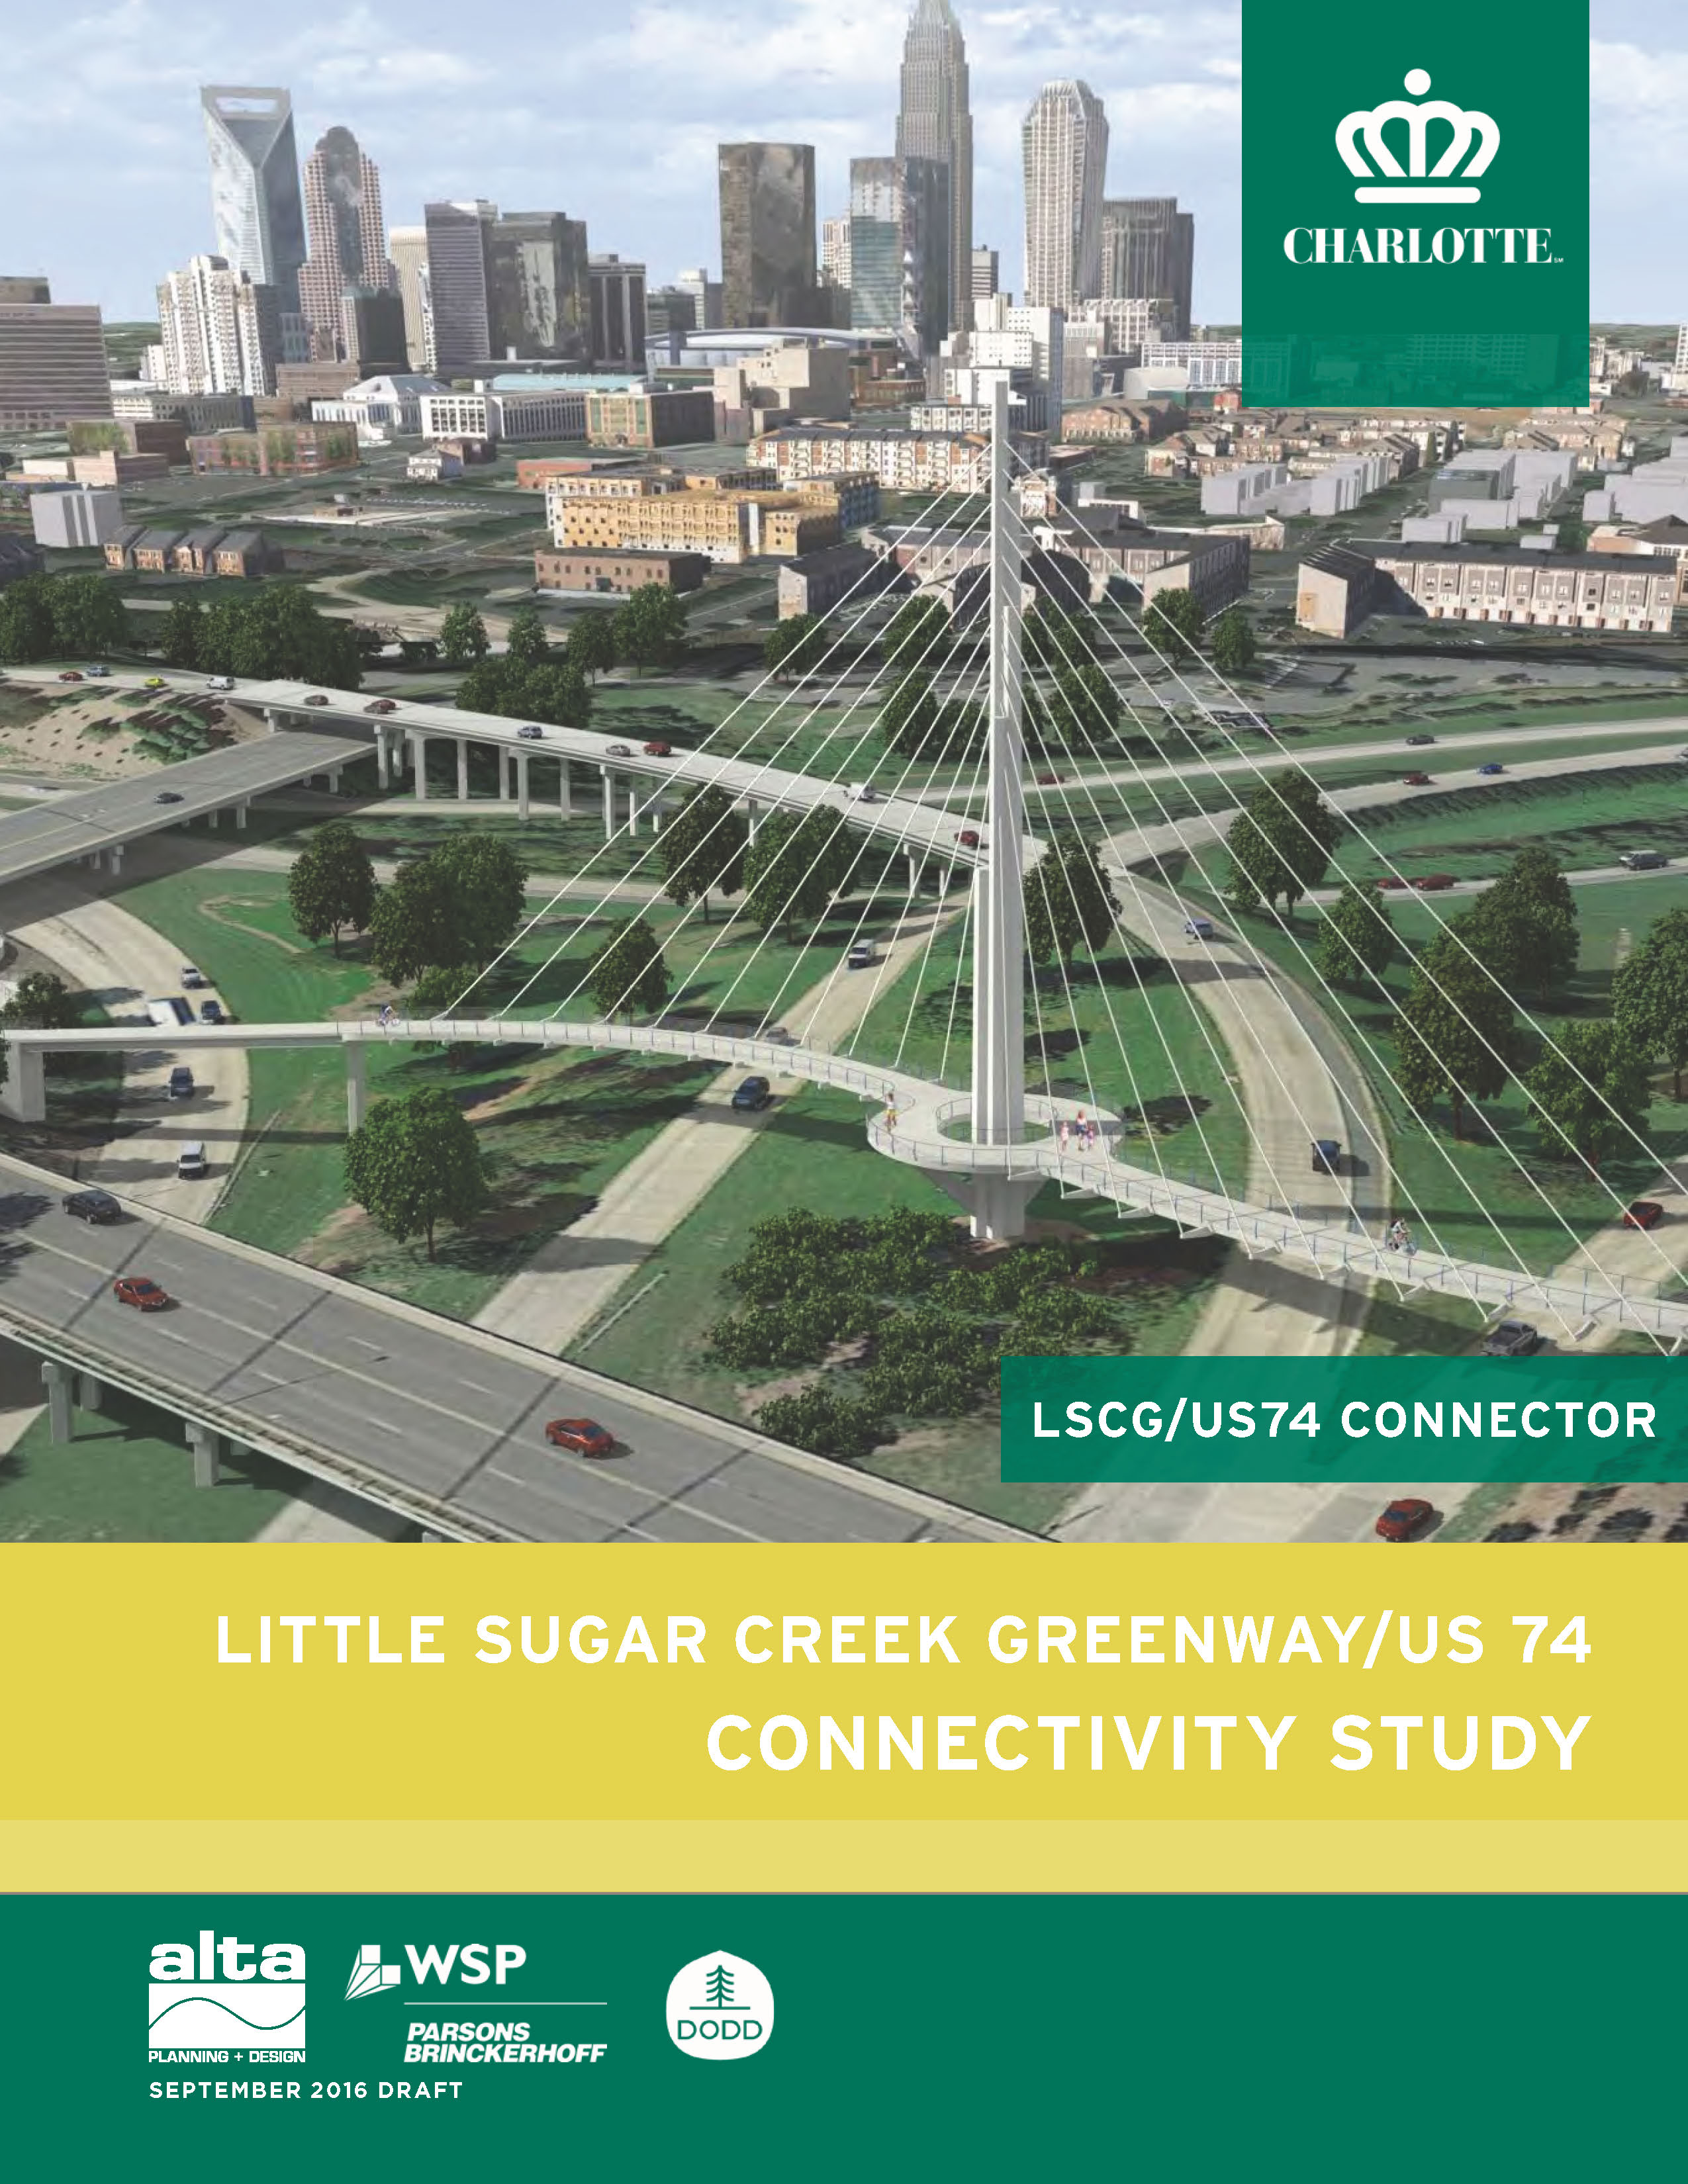 Little Sugar Creek Greenway/US 74 connectivity study